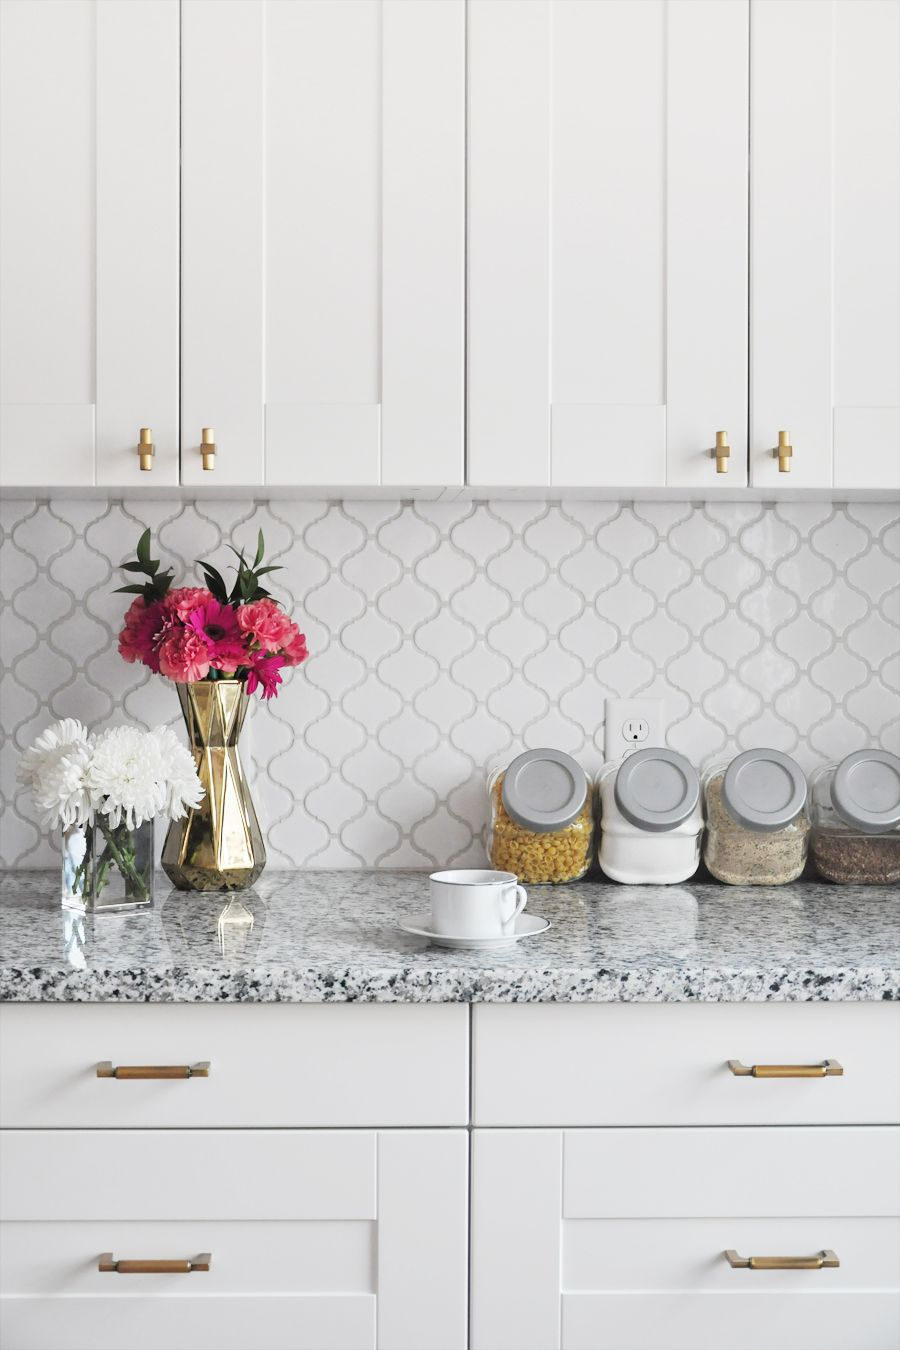 How To Tile a Kitchen Backsplash: DIY Tutorial Sponsored by